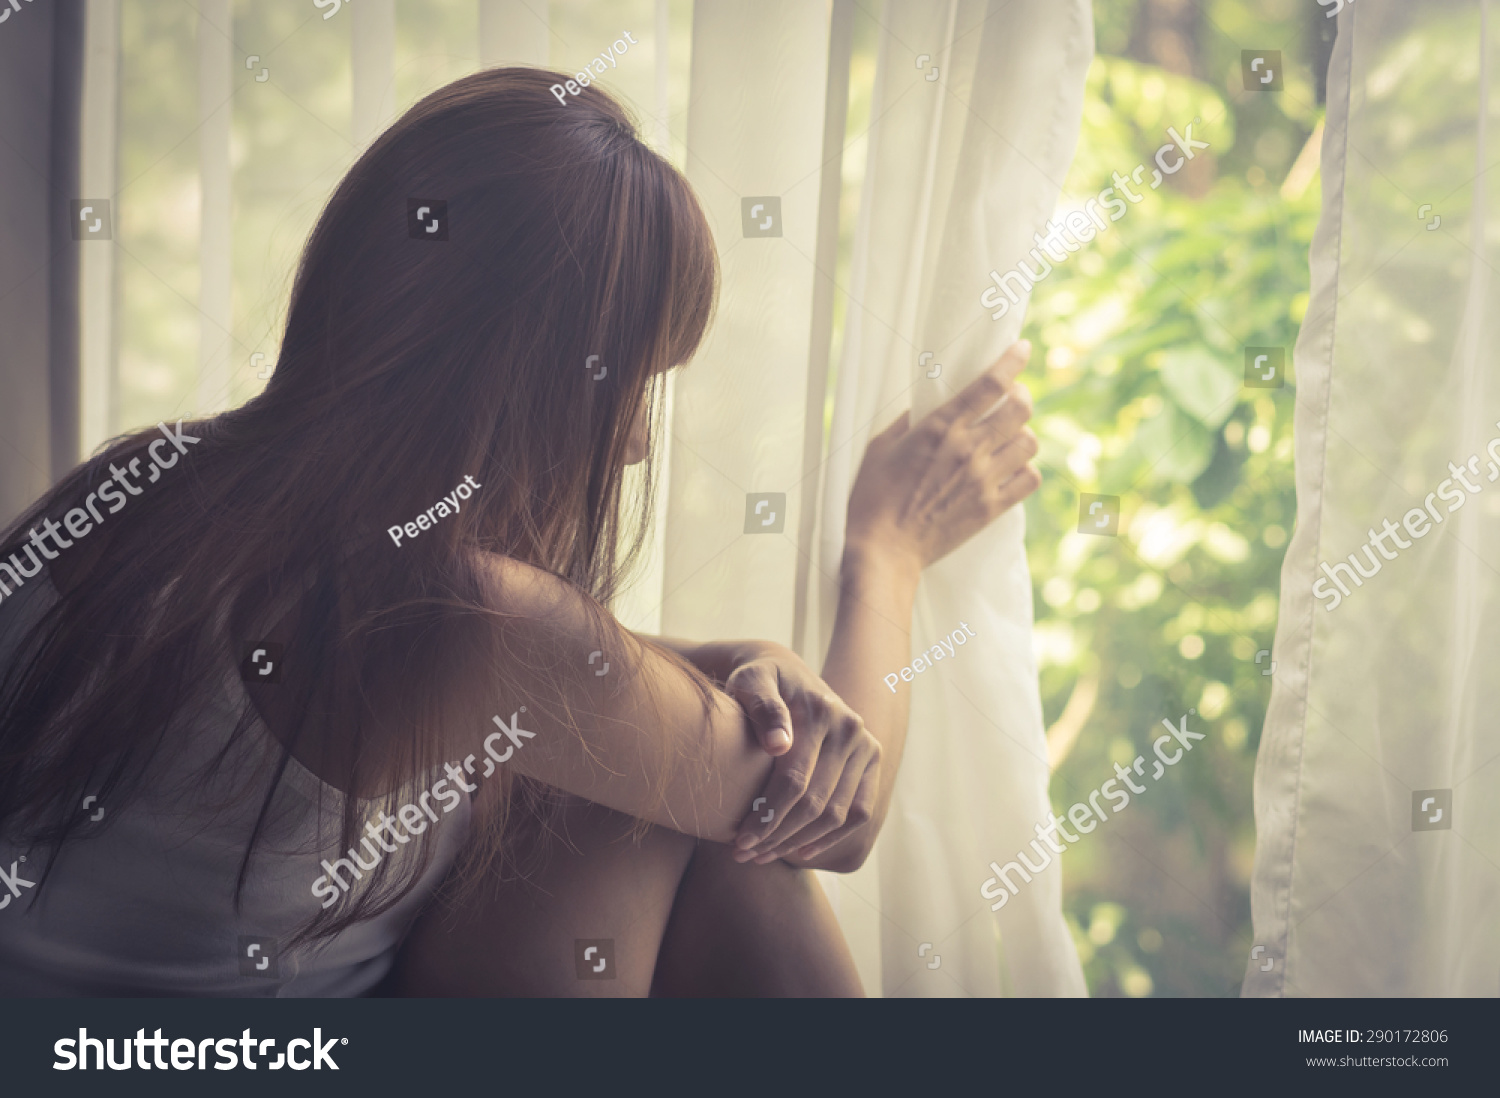 Sad girl looking out of window vintage filtered